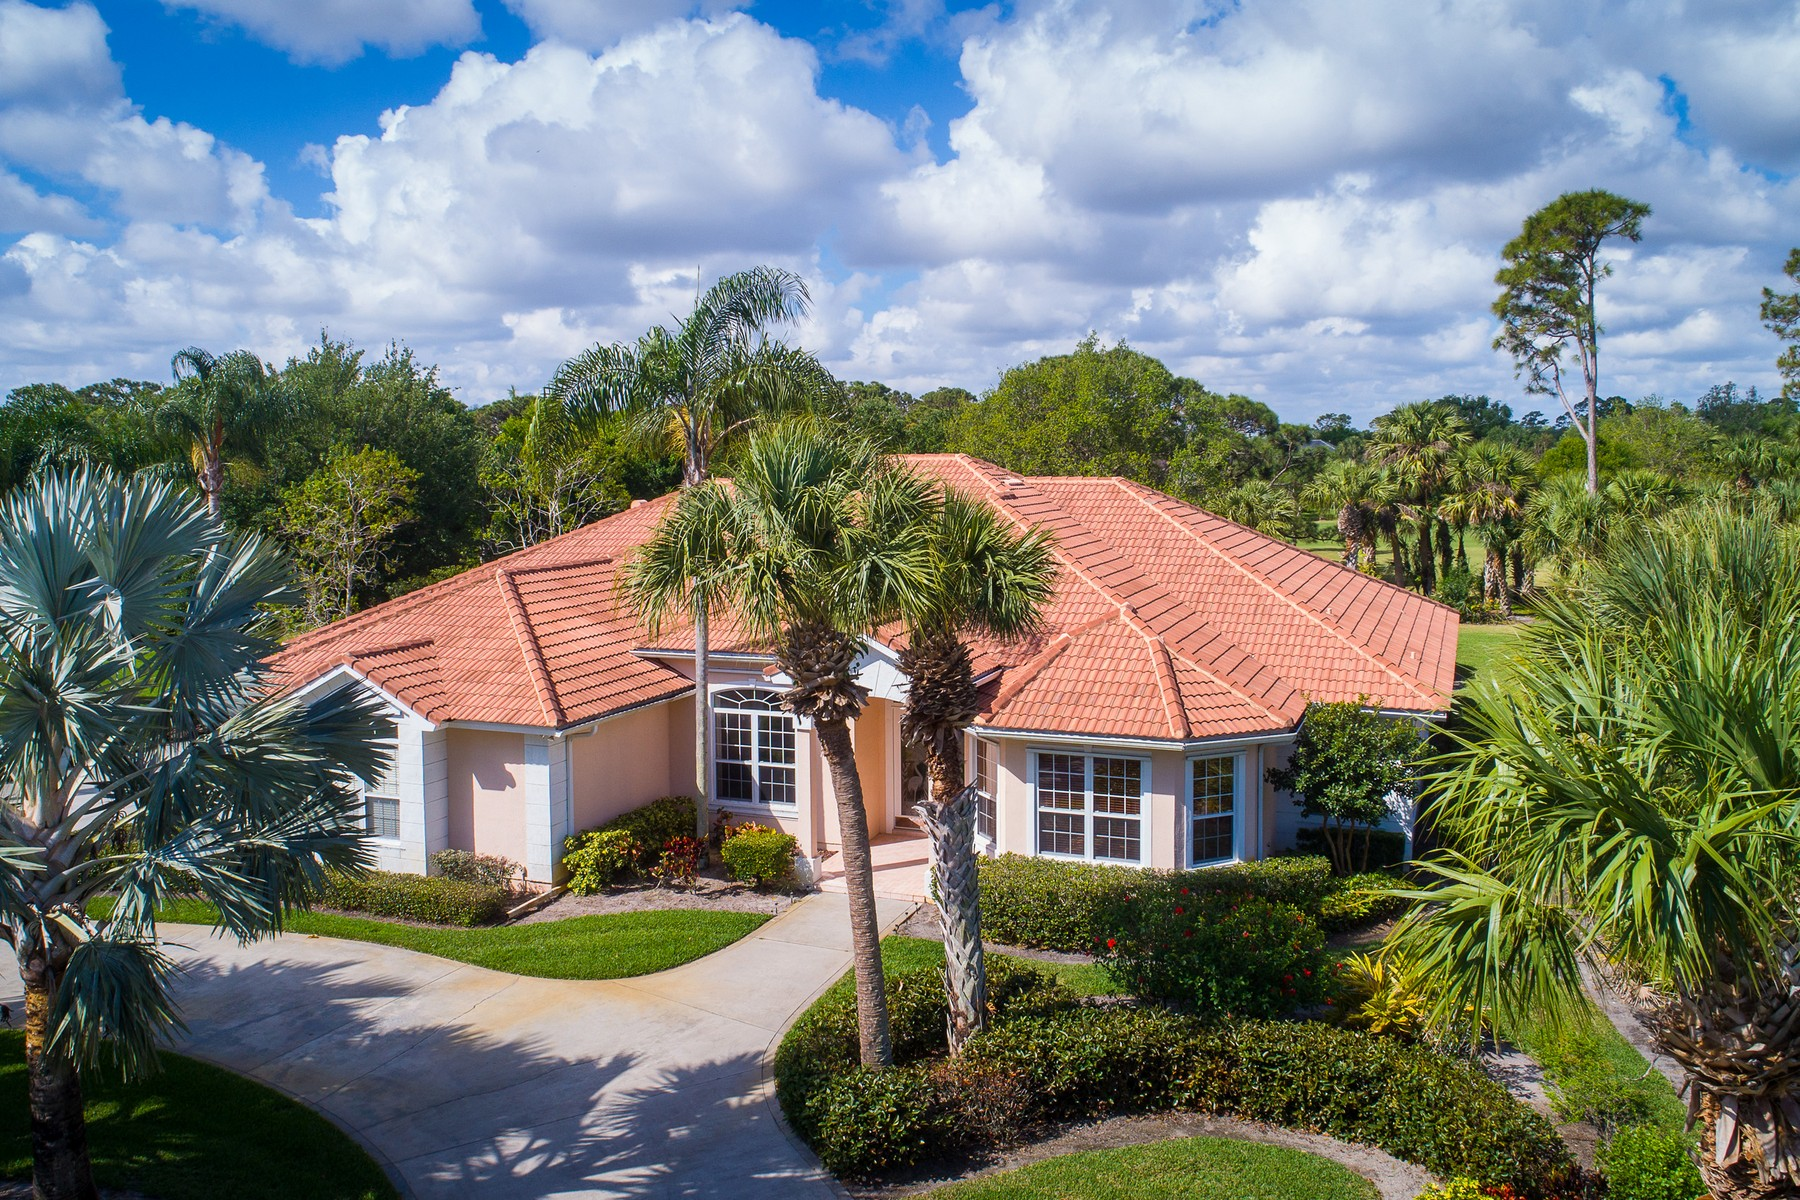 Single Family Home for Sale at Fully Furnished Home on Golf Course! 5851 Bent Pine Drive Vero Beach, Florida 32967 United States